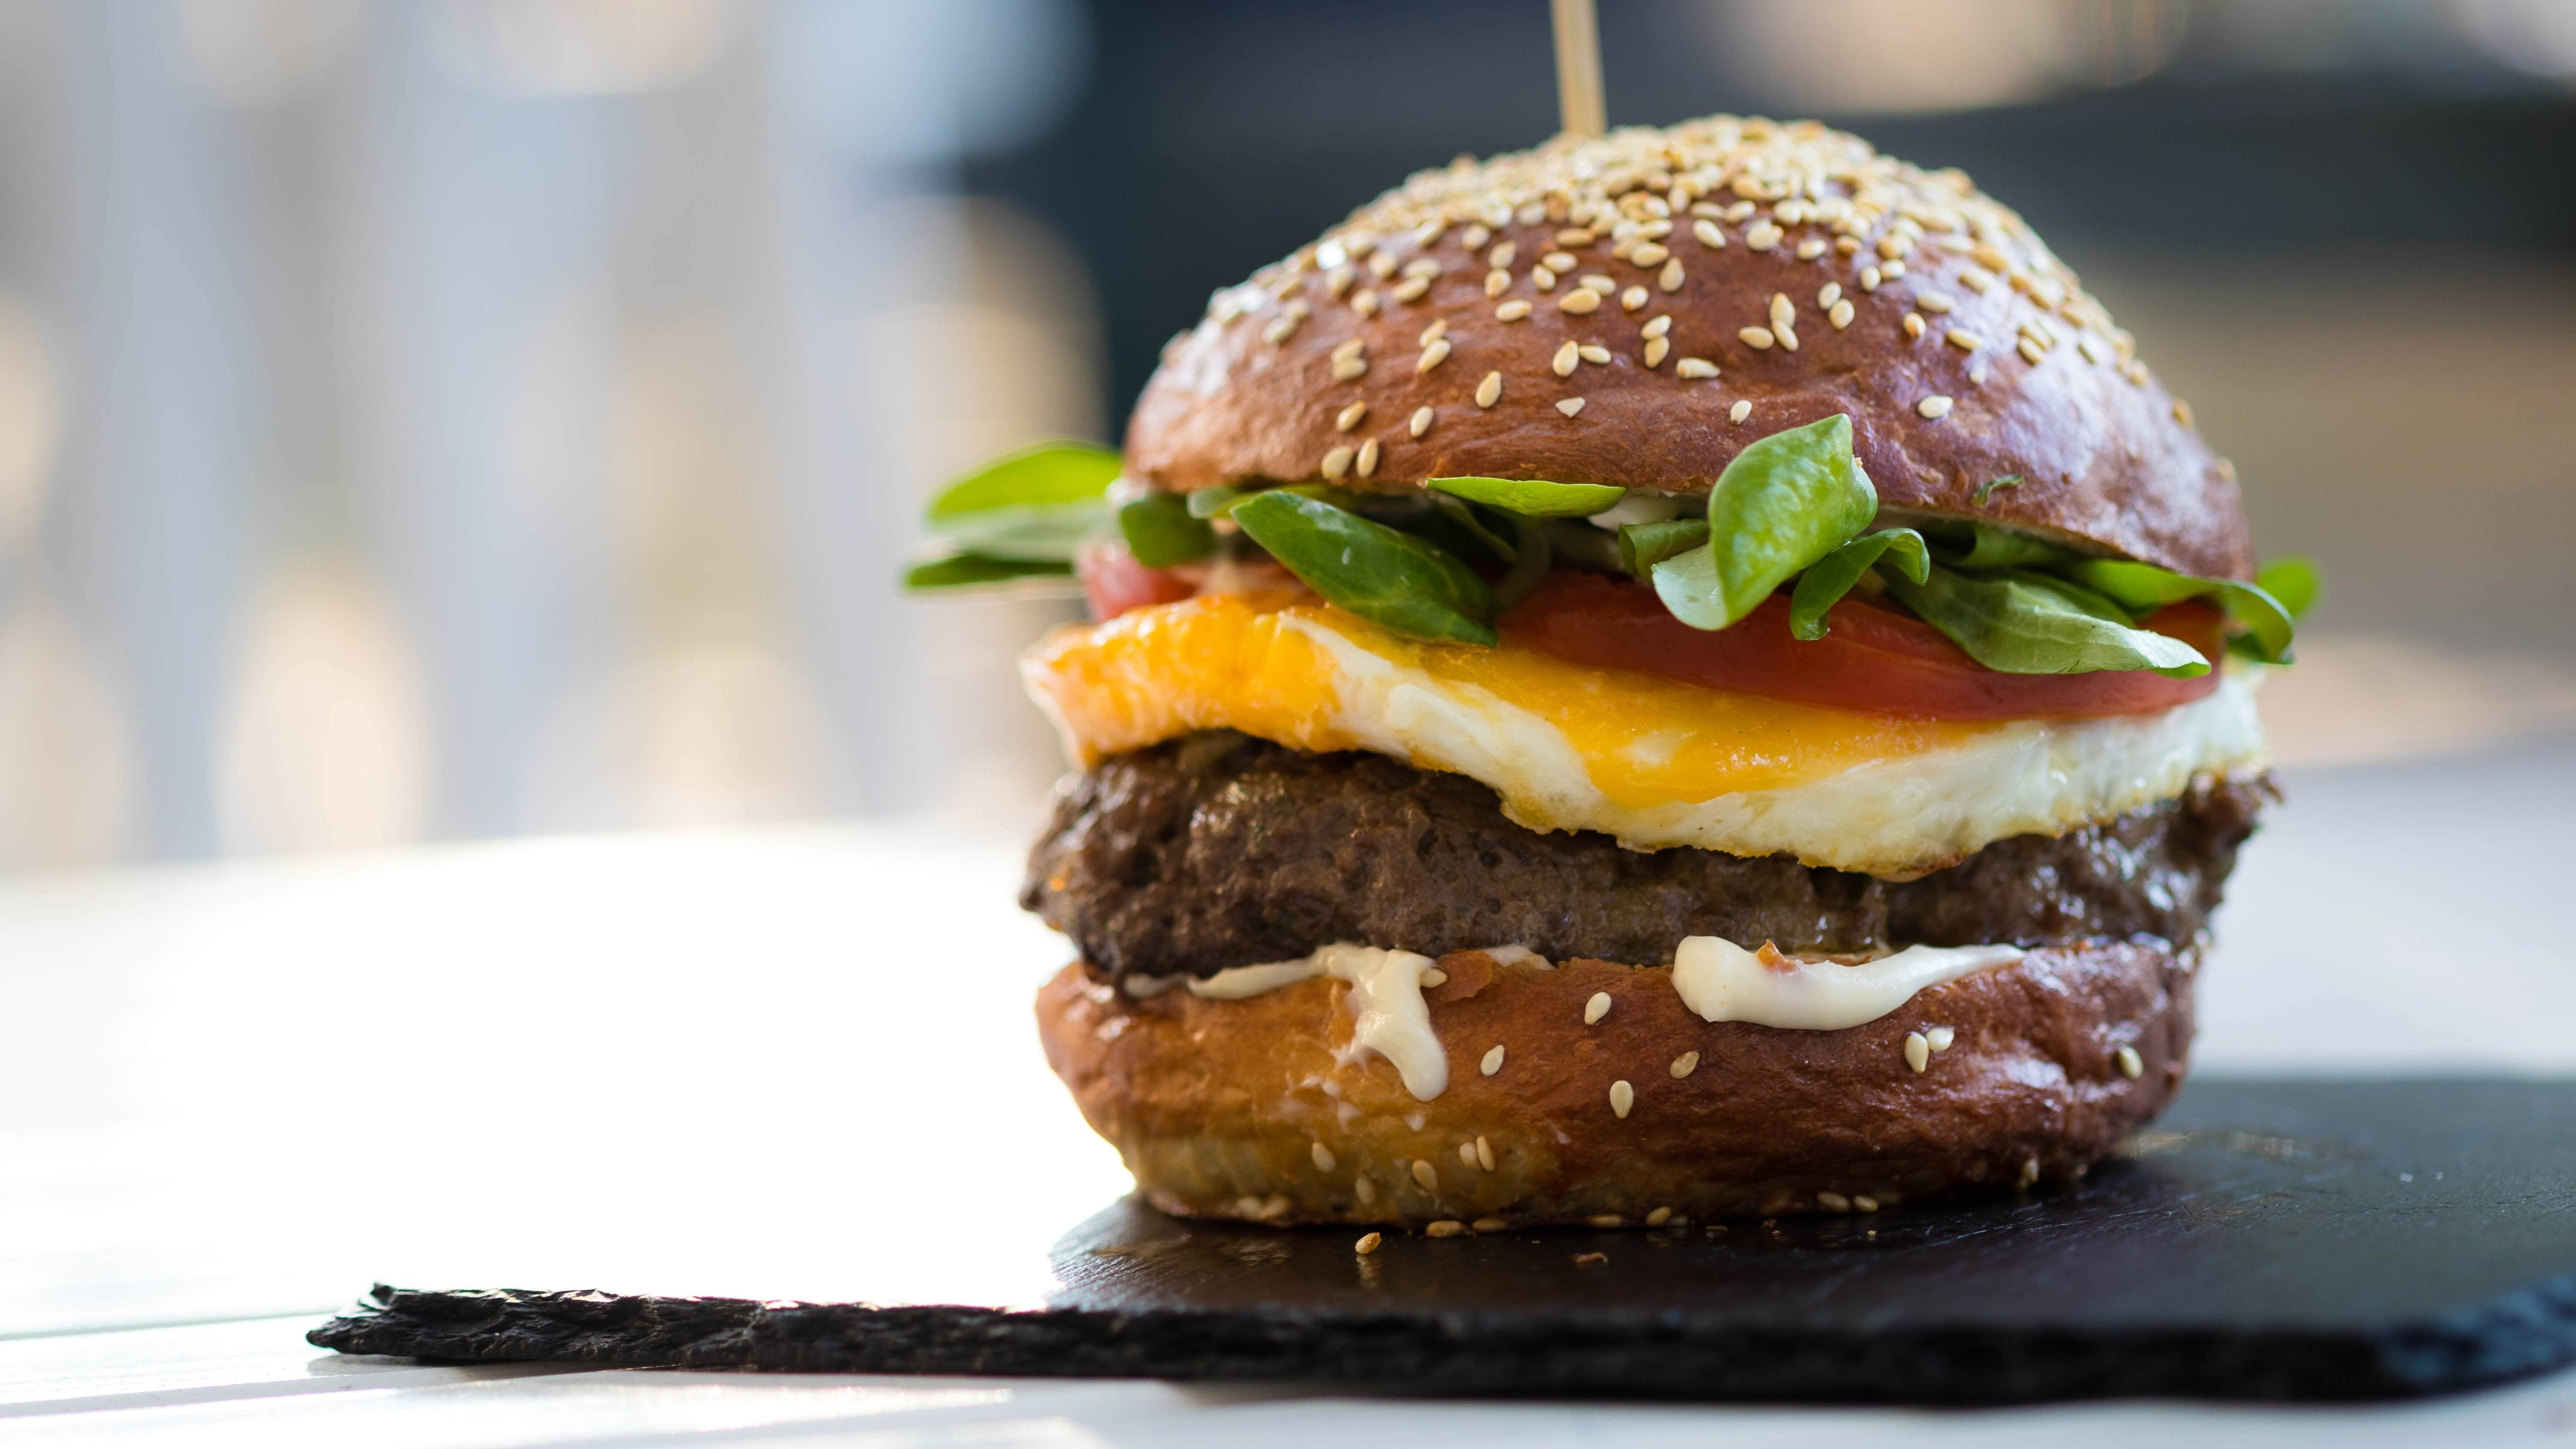 Impossible Burger Vs Real Meat: Which Is Healthier?